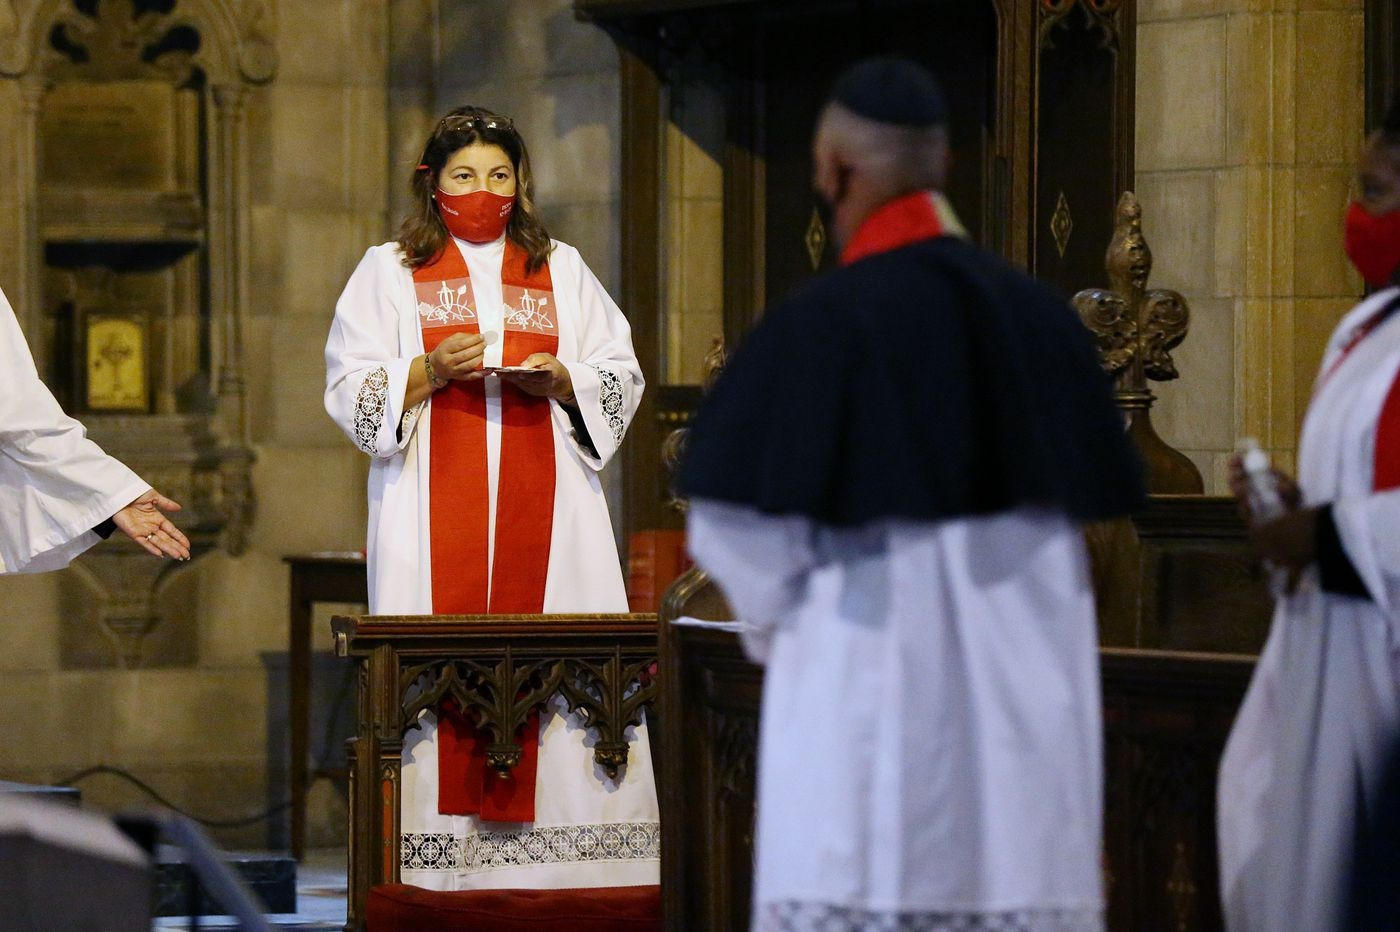 The first female Hispanic priest in Pa.'s Episcopal Church is ordained. She's from Philadelphia.